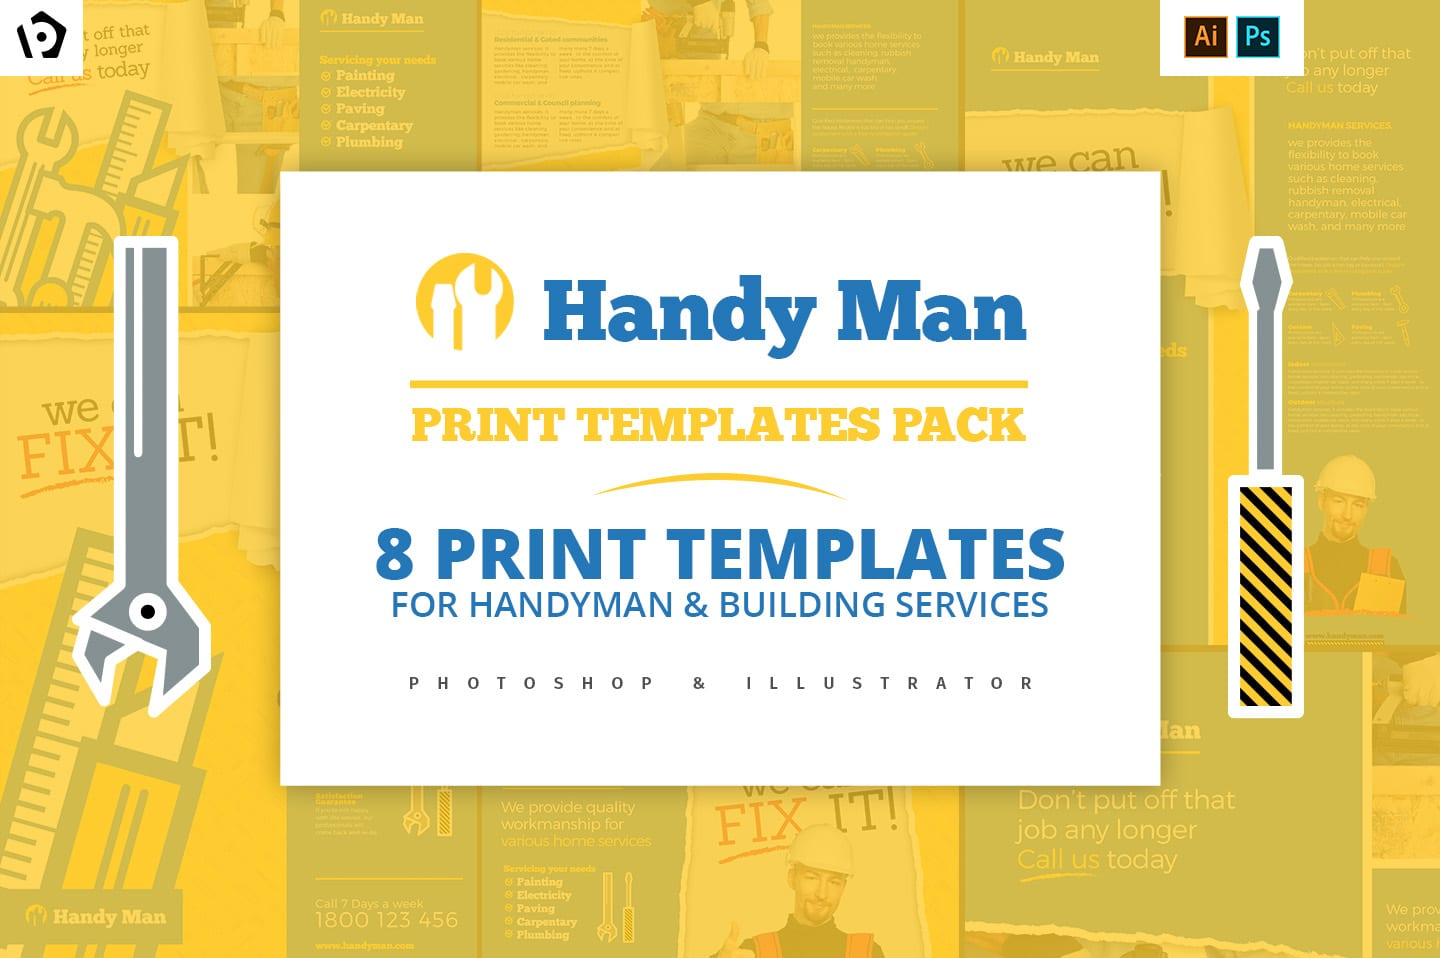 Handyman Templates Pack